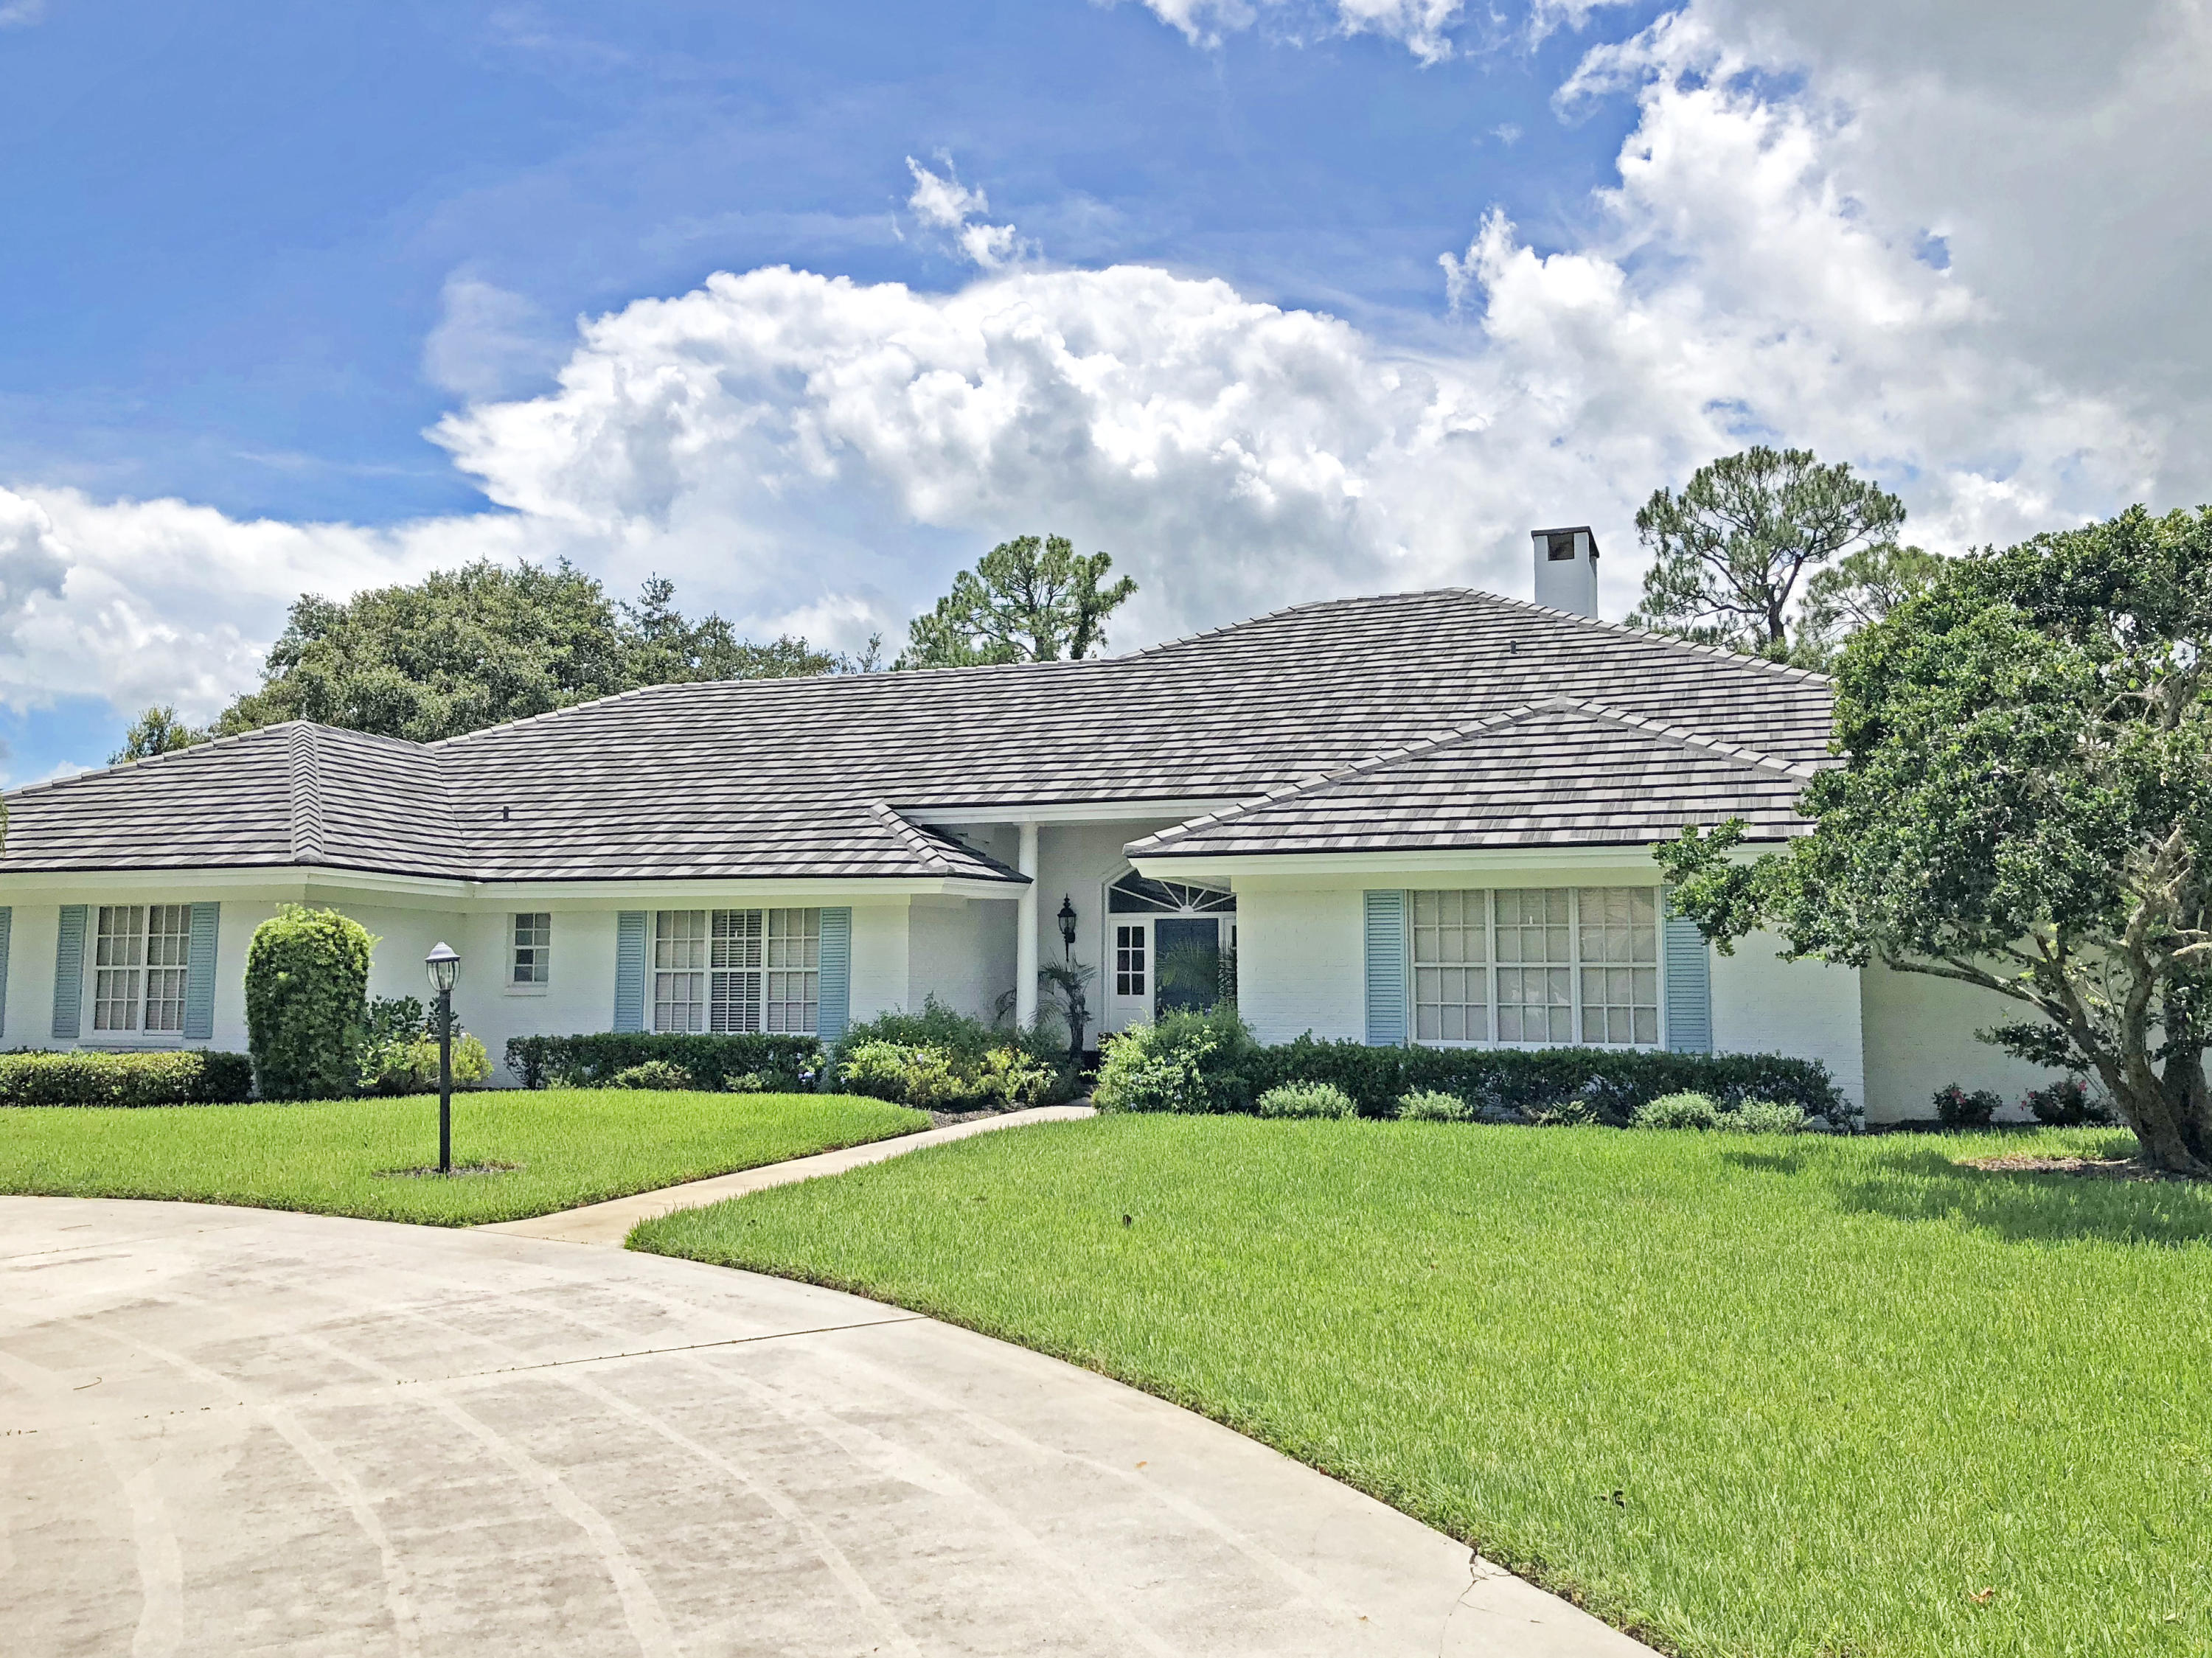 Port Saint Lucie Homes for Sale -  Price Reduced,  7685  Wexford Way